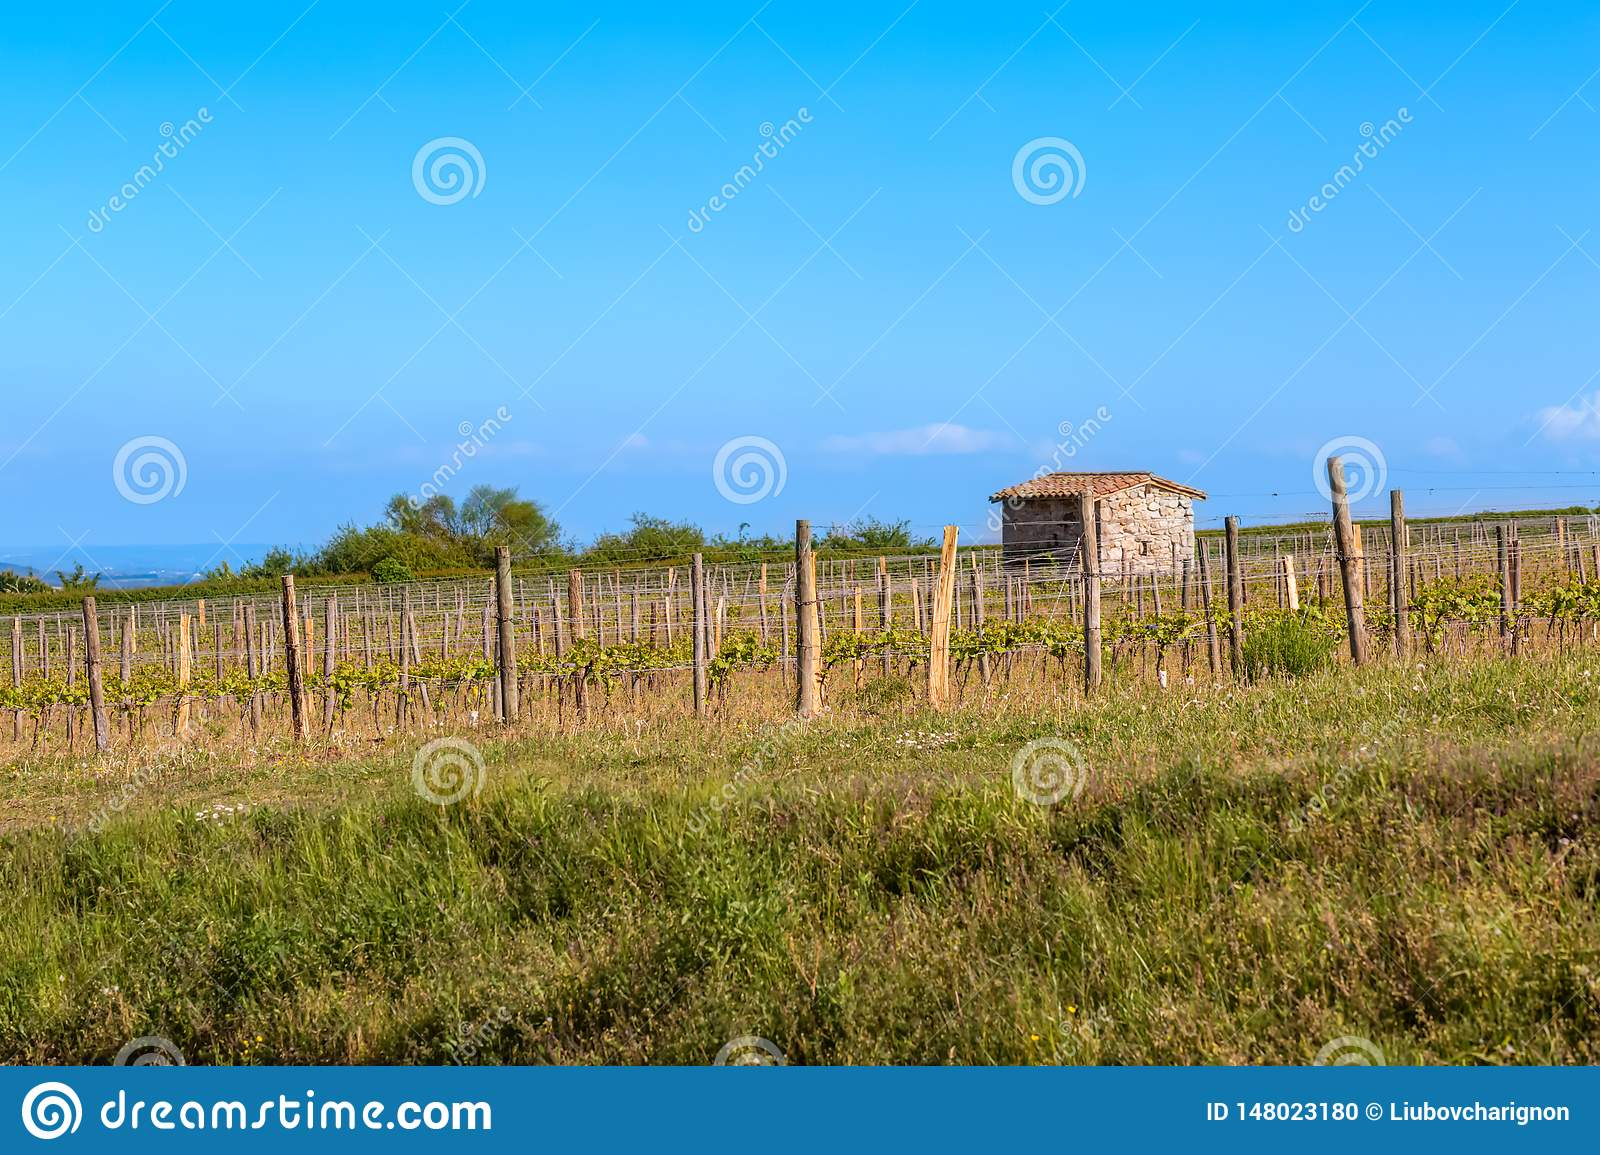 Wooden poles with stretched metal wire support the vineyard lit by evening light. Medieval shed on the field. Blue sky. Art photo.